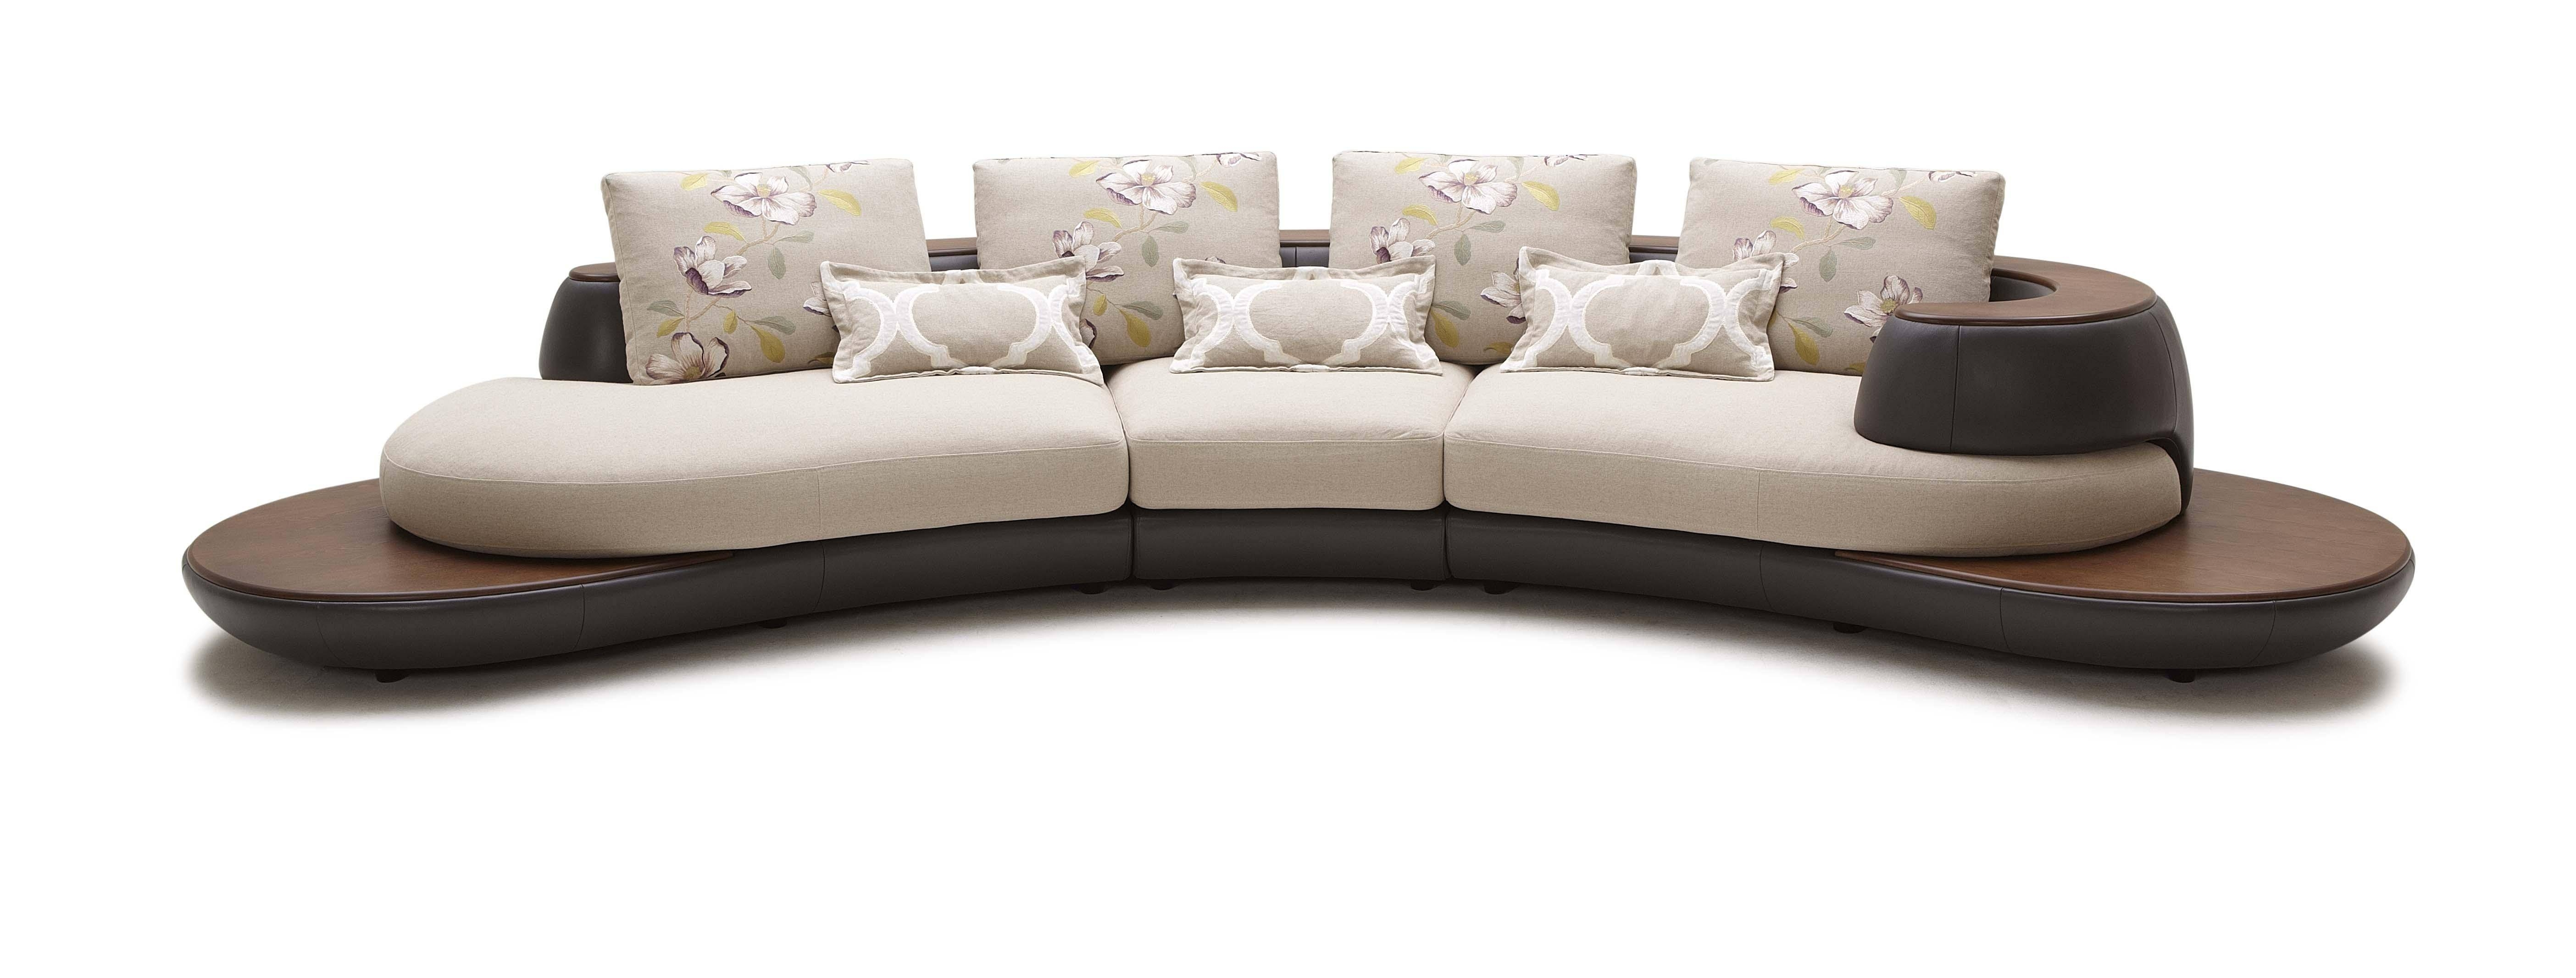 30 Best Contemporary Curved Sofas